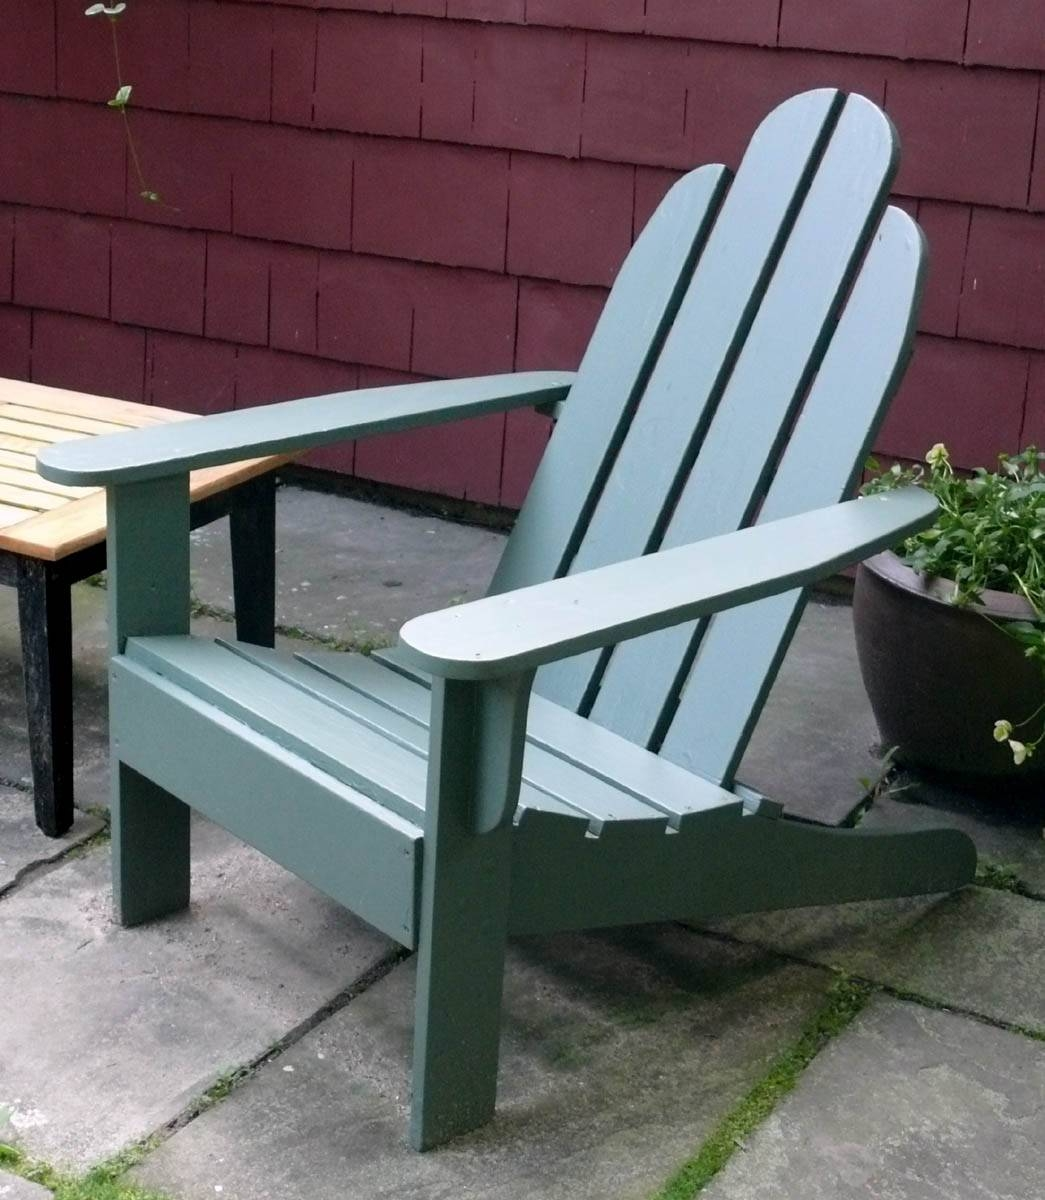 How To Make Outdoor Furniture - Finewoodworking in Outdoor Sofas and Chairs (Image 9 of 15)